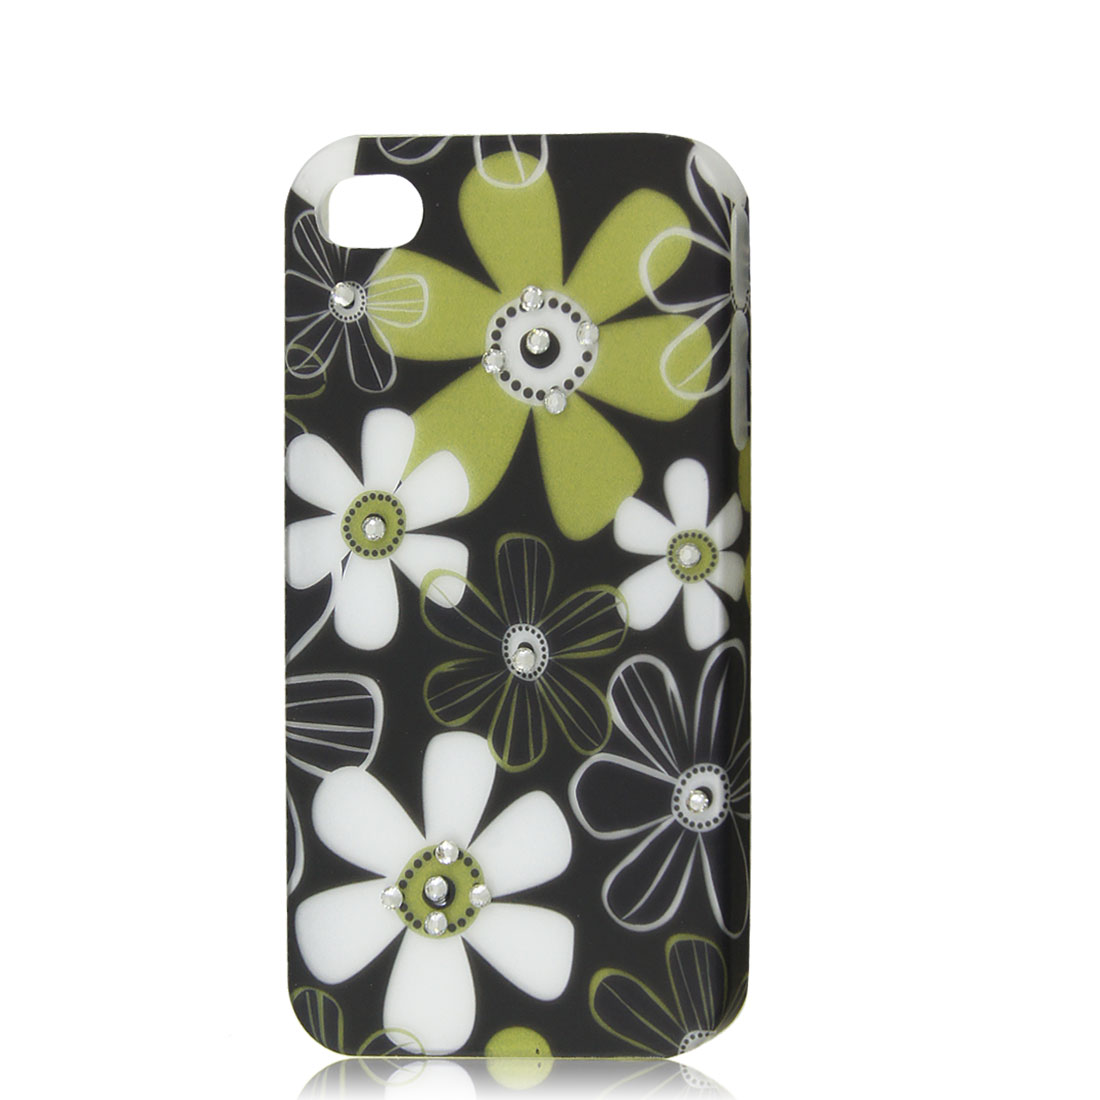 Black Rhinestone Flower Protective Hard Back Case Cover Skin for iPhone 4 4G